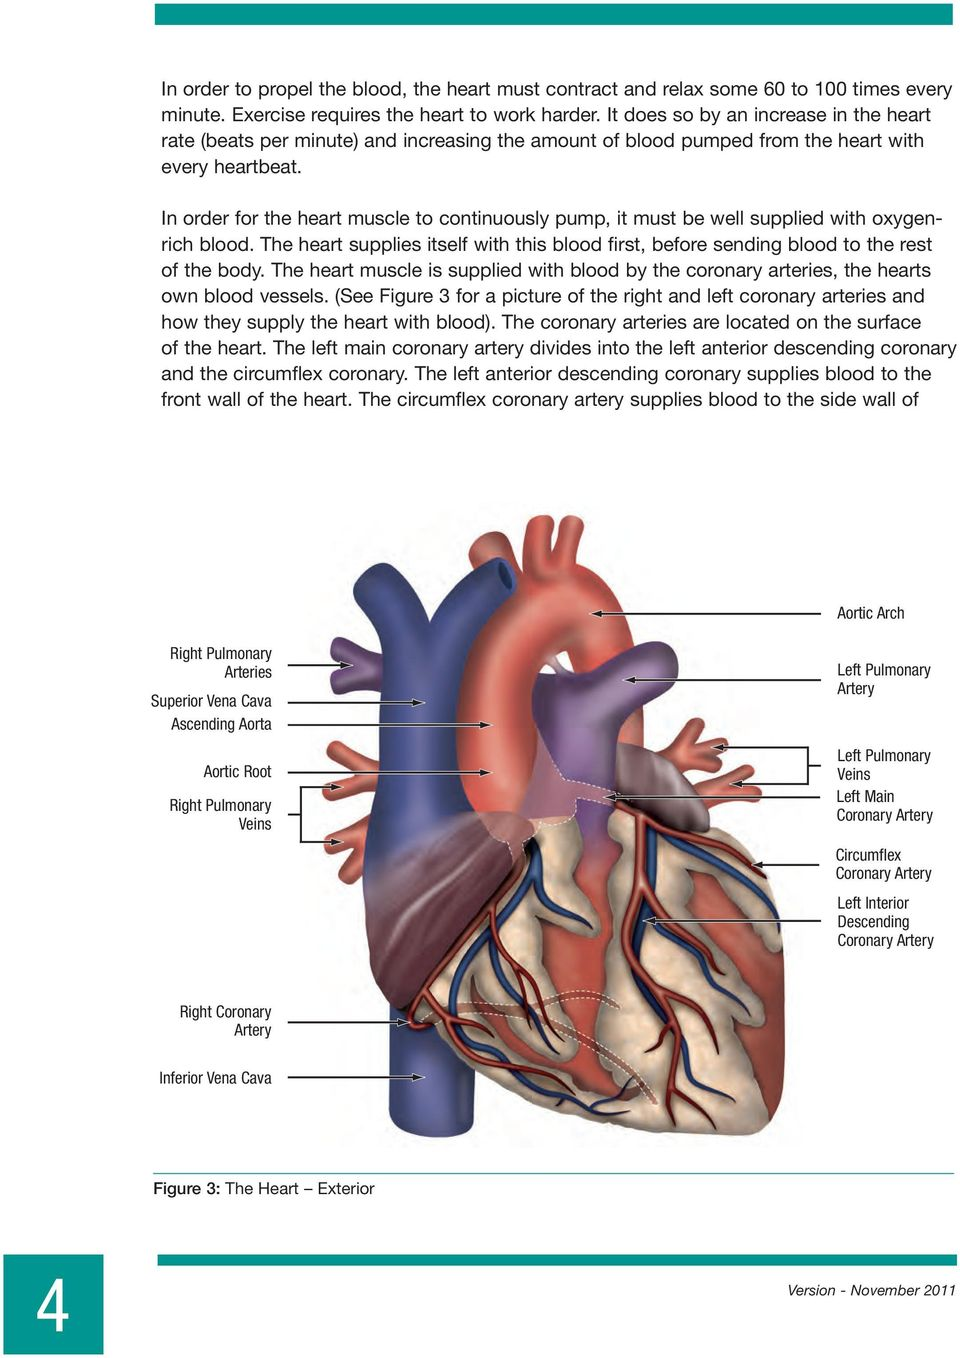 In order for the heart muscle to continuously pump, it must be well supplied with oxygenrich blood. The heart supplies itself with this blood first, before sending blood to the rest of the body.